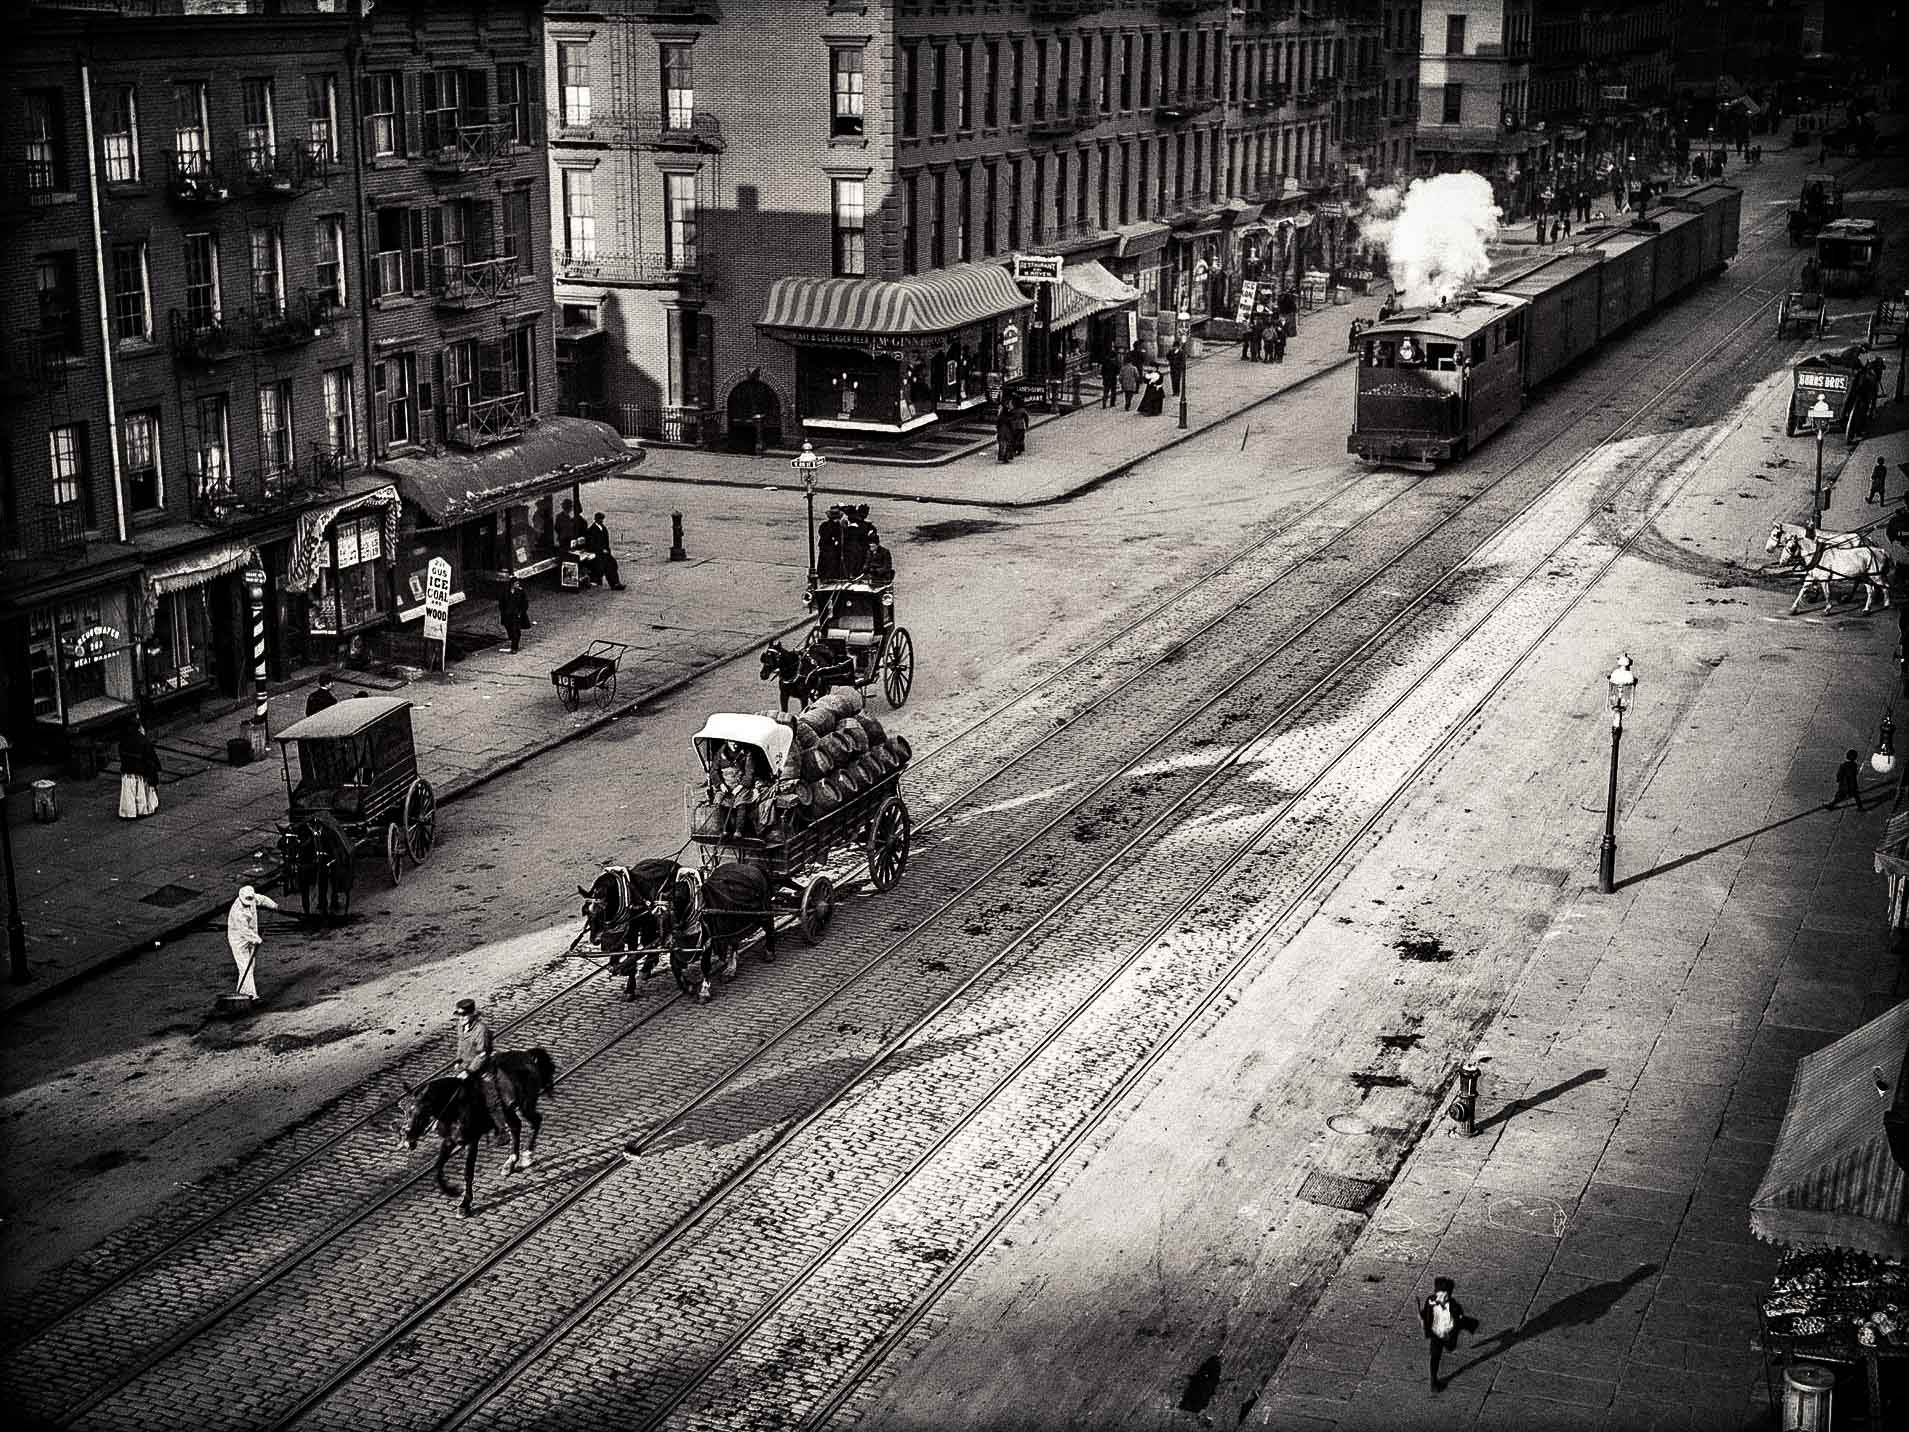 Chelsea during the Old Days of New York